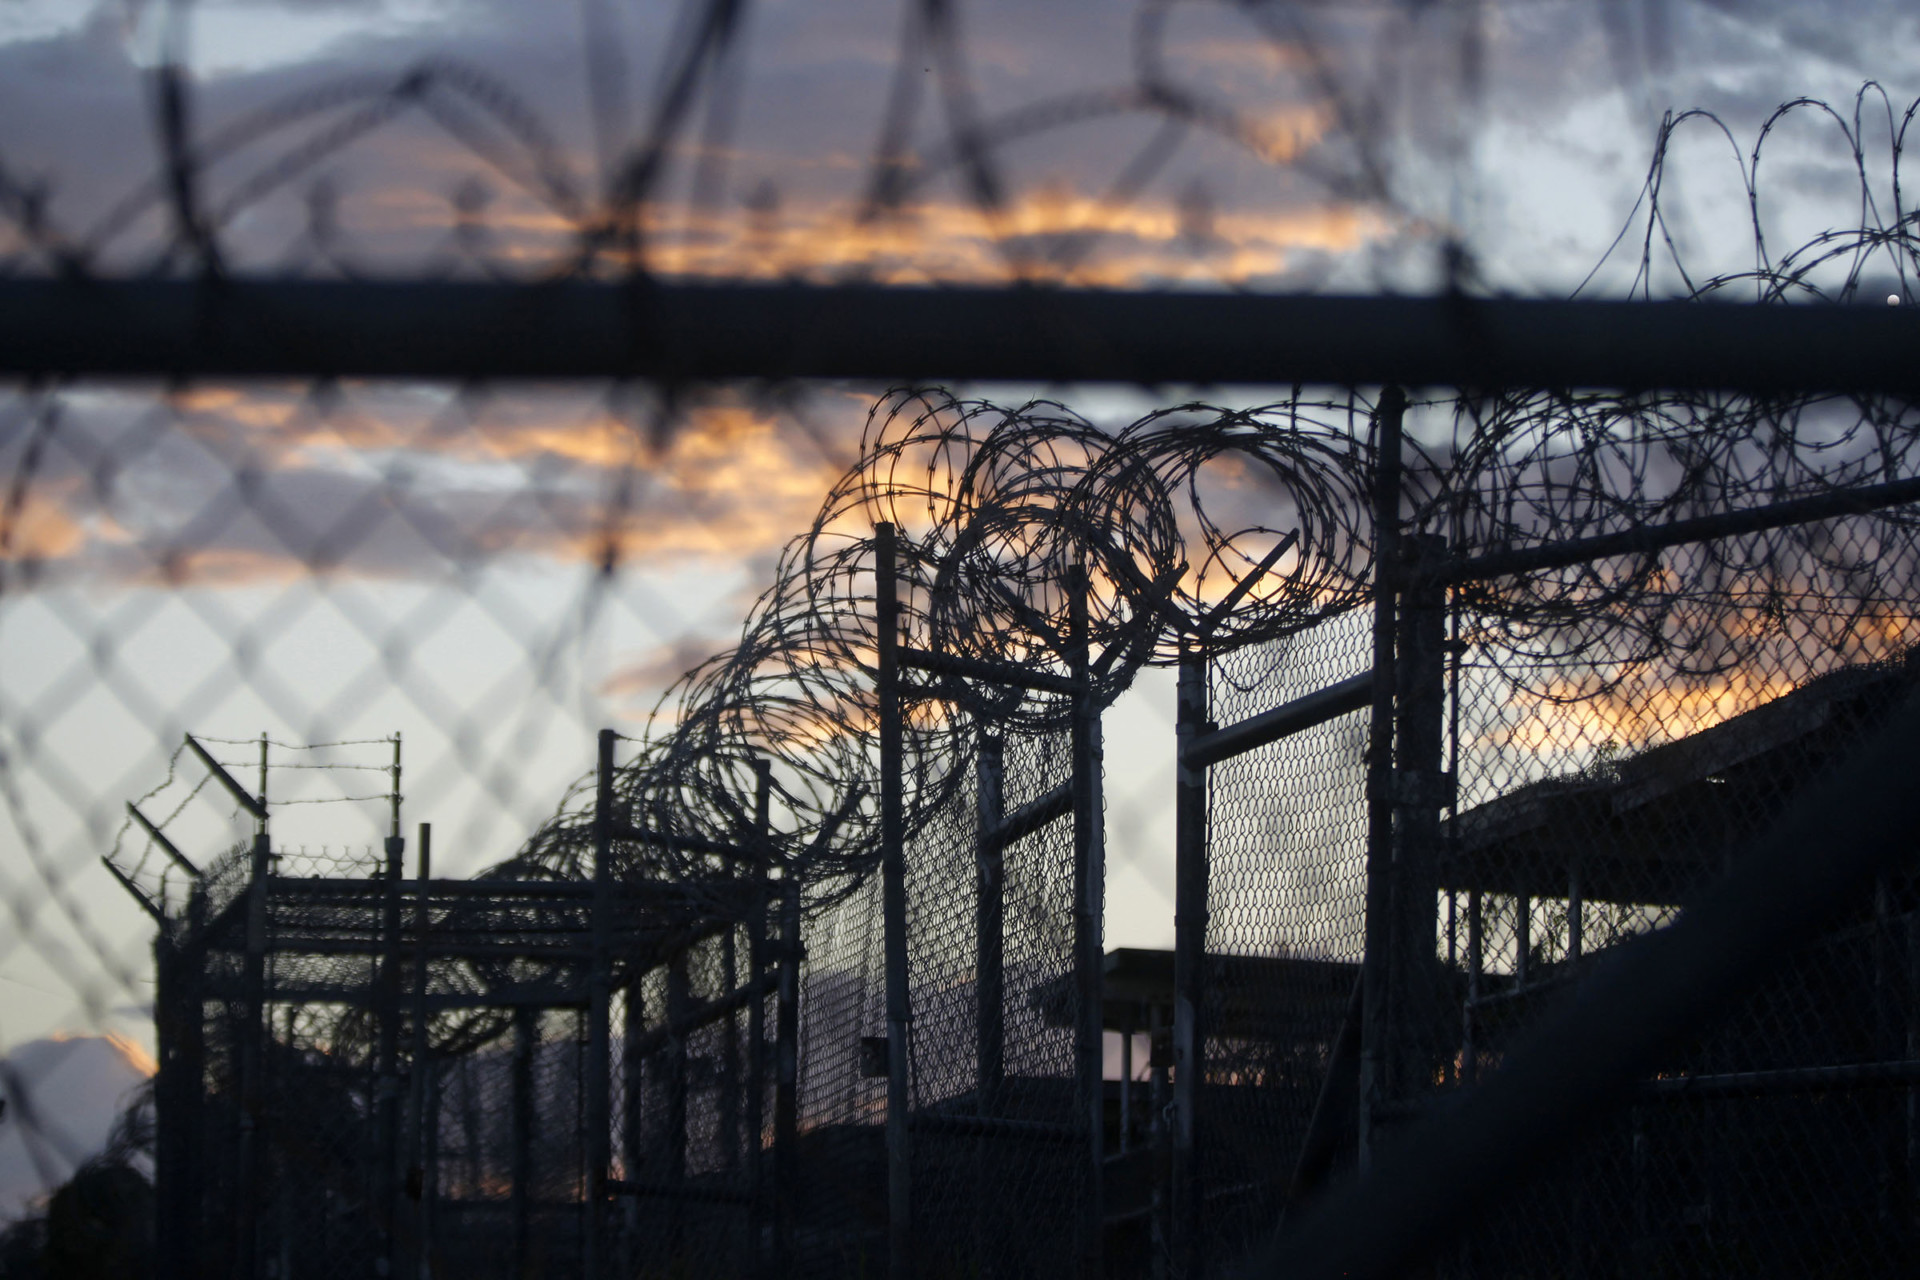 Hurricane forces Guantanamo Bay evacuations, but detainees remain